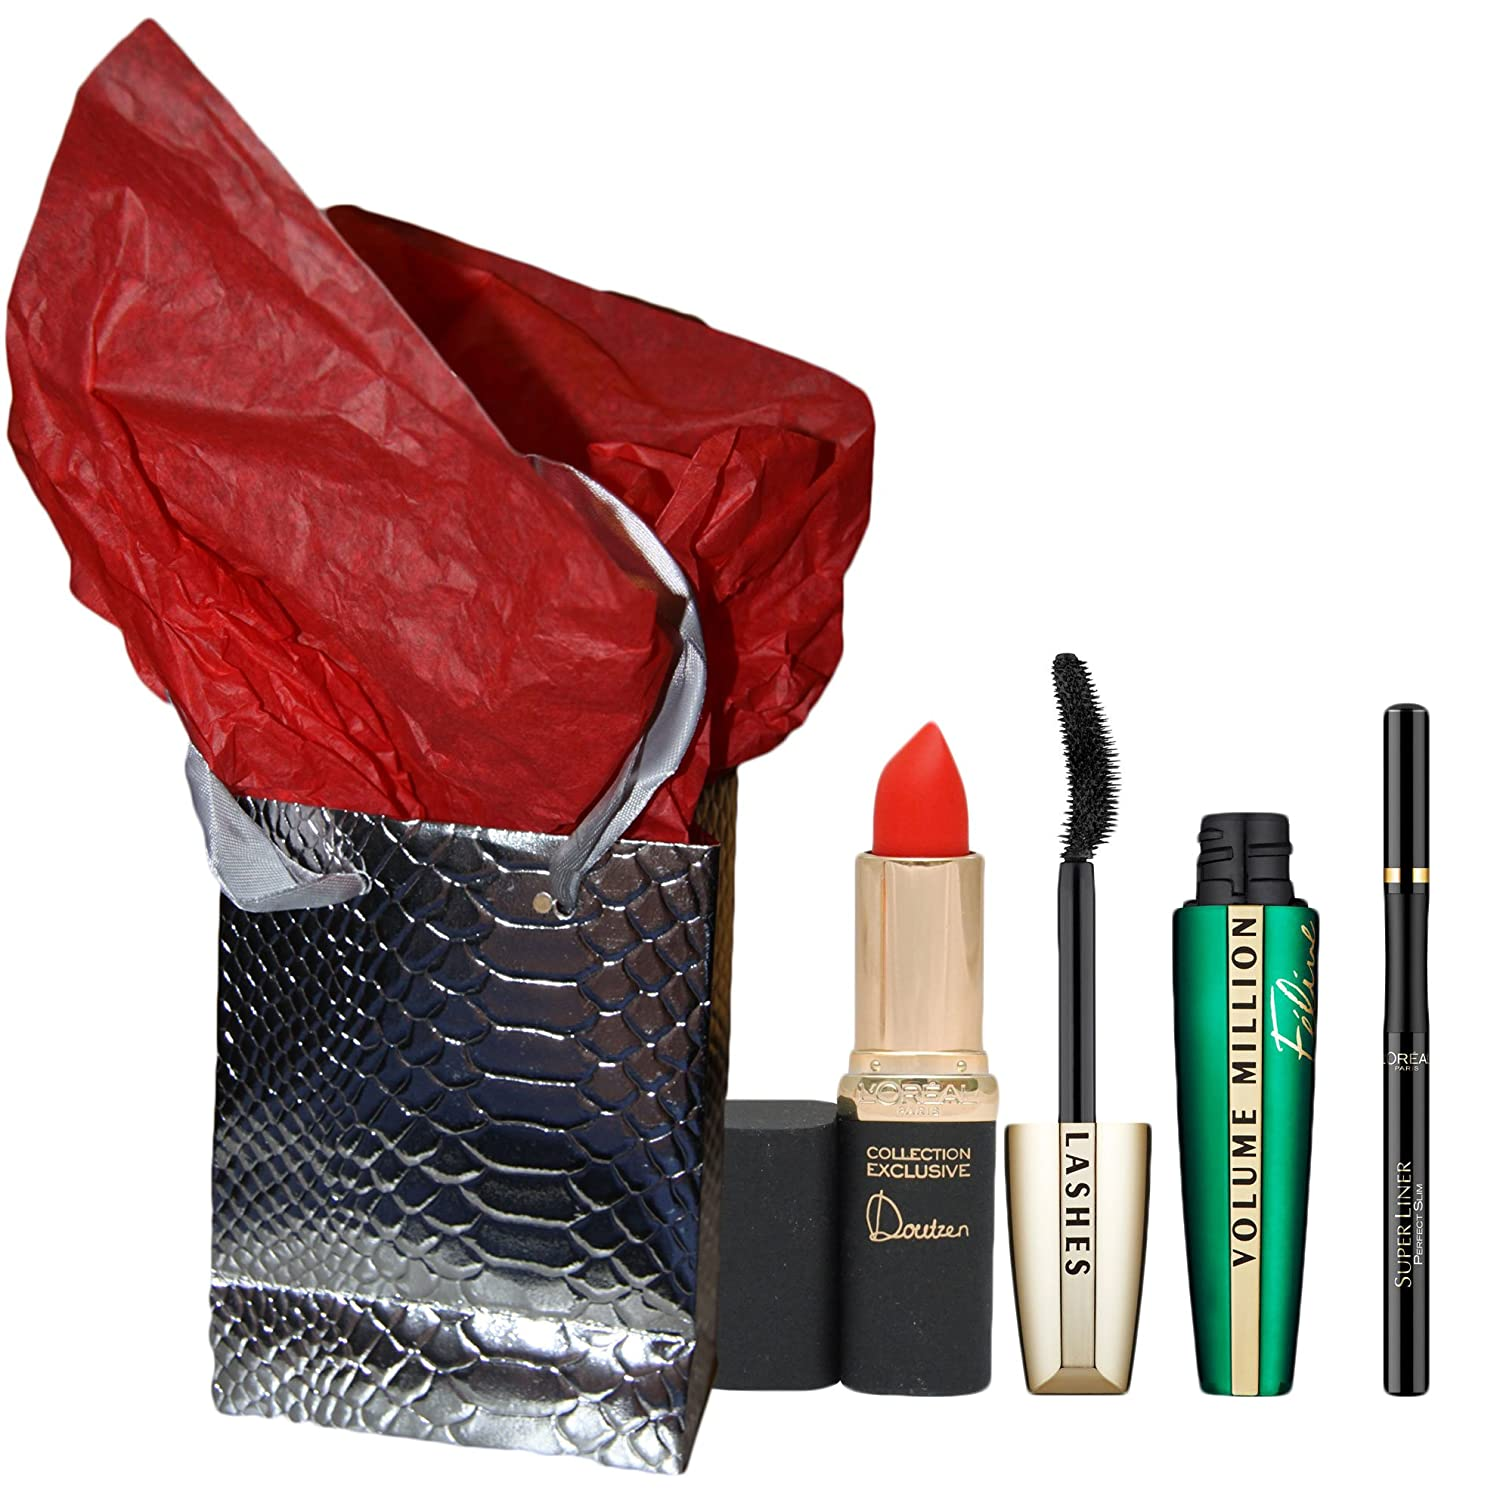 Coffret cadeau noel L'OREAL - mascara FELINE + eye liner superliner superstar noir + rouge levres color riche doutzen rouge + boite + papier soie L' OREAL